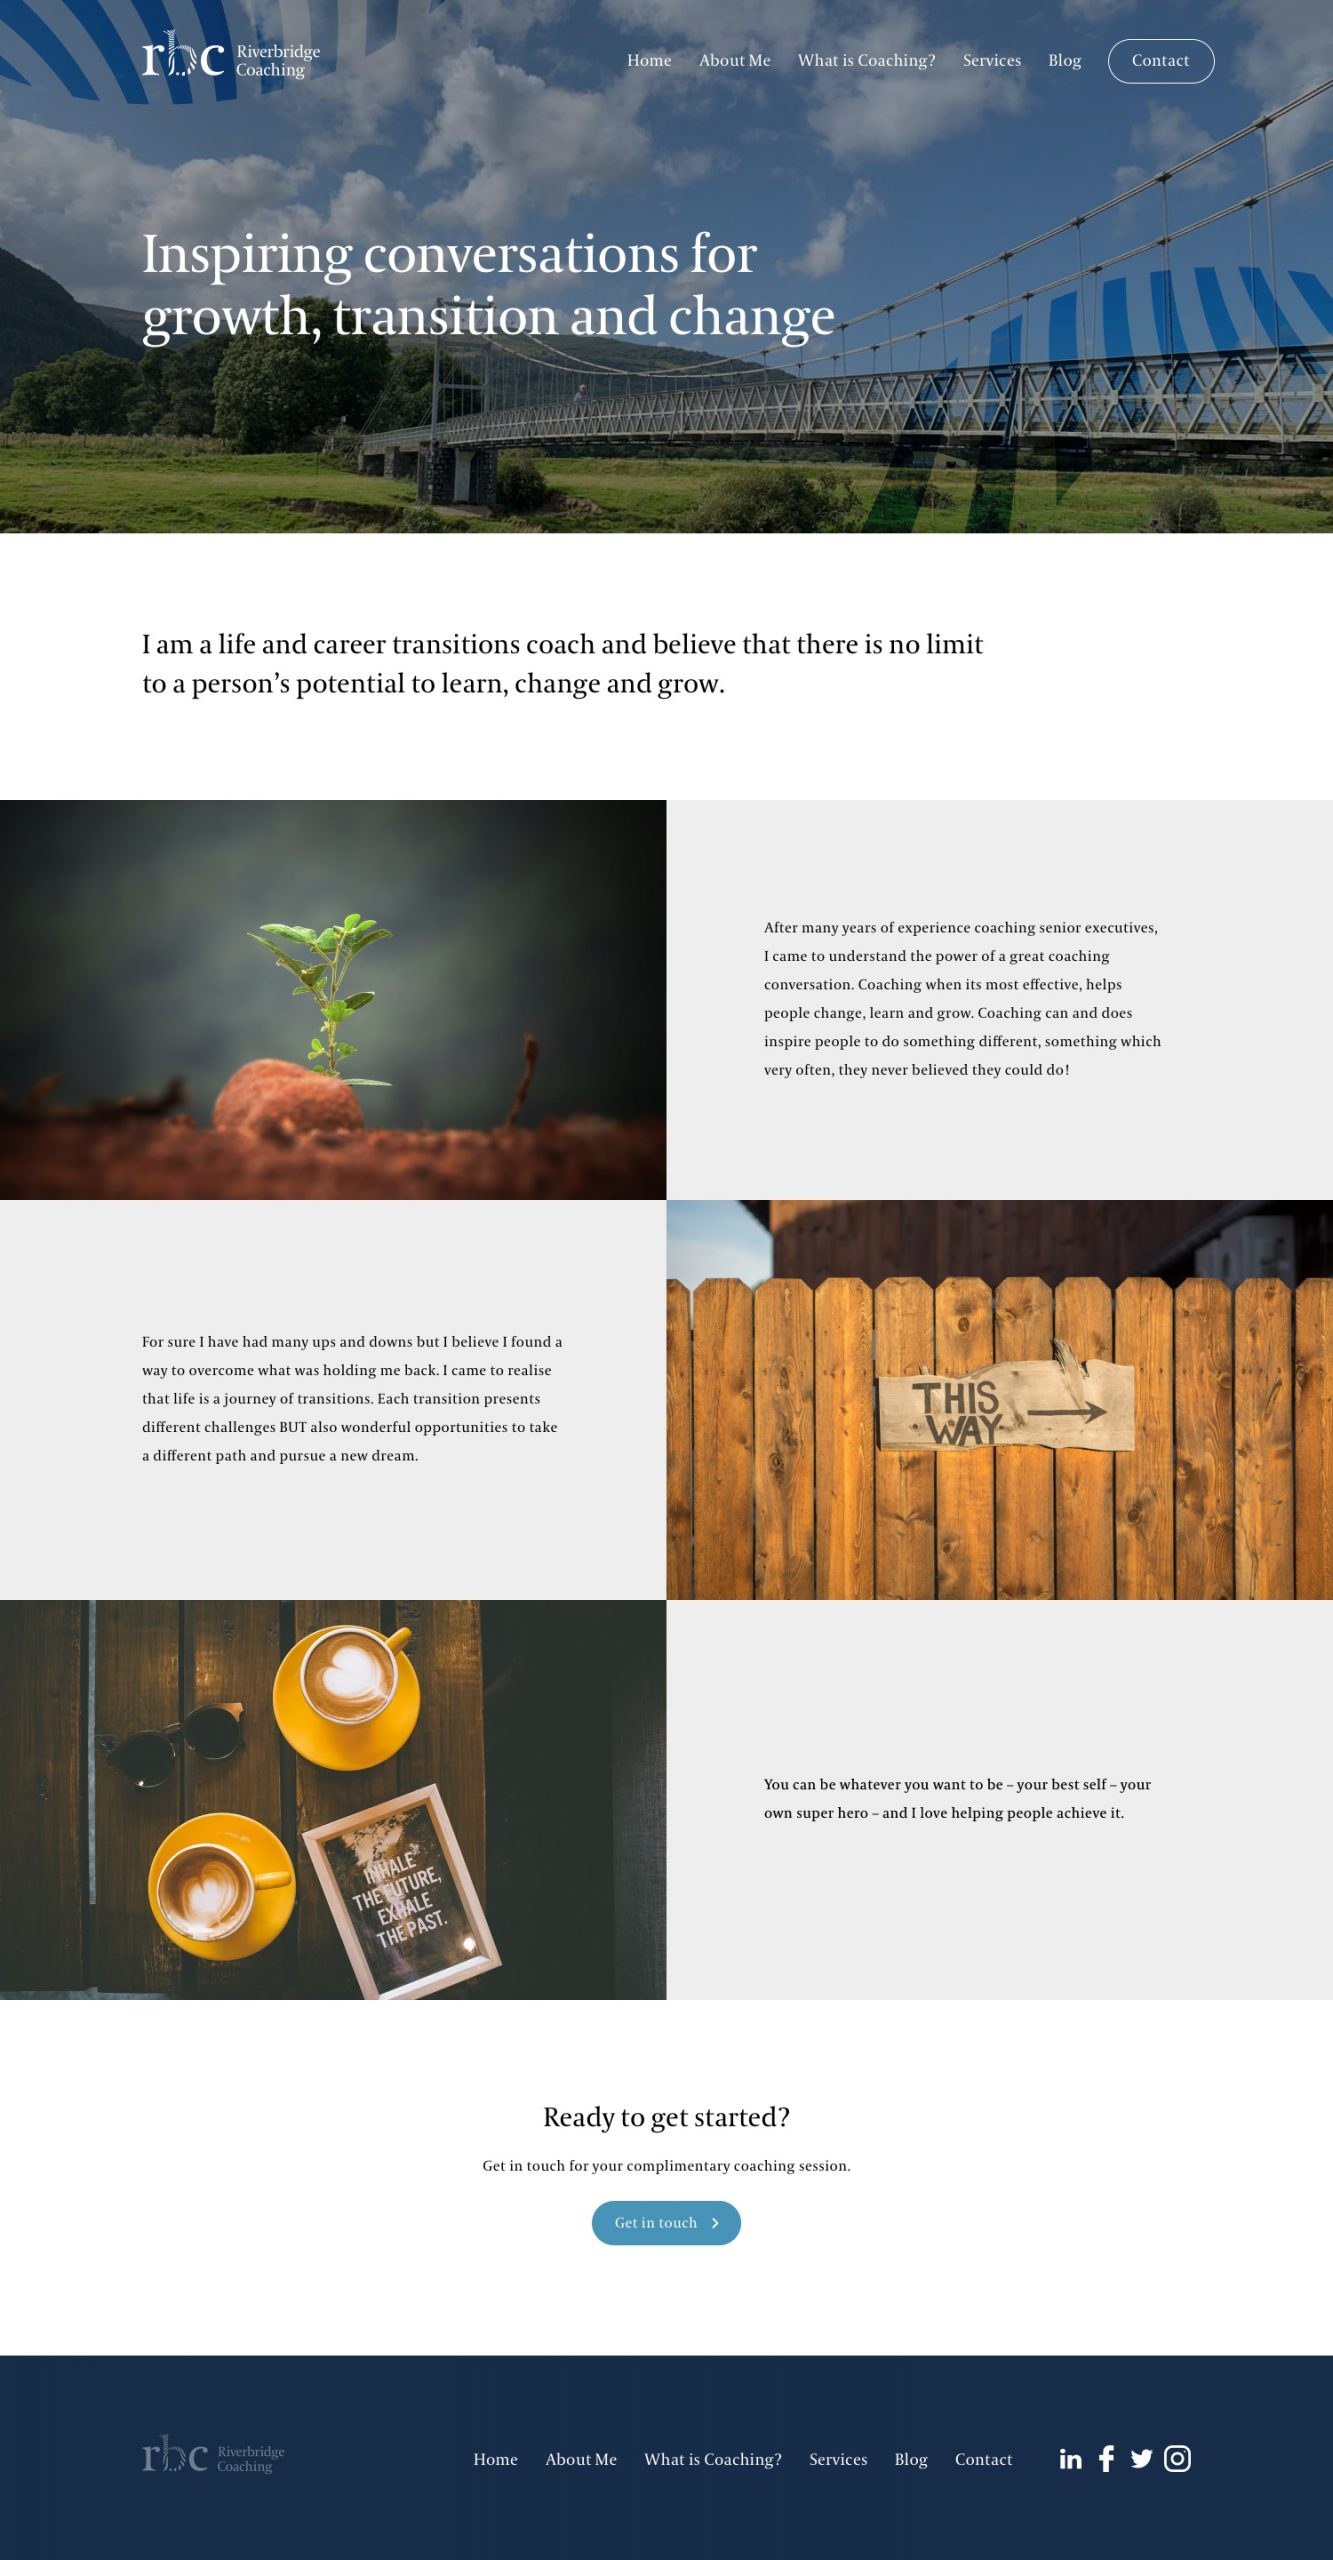 Design and branding for start-up company